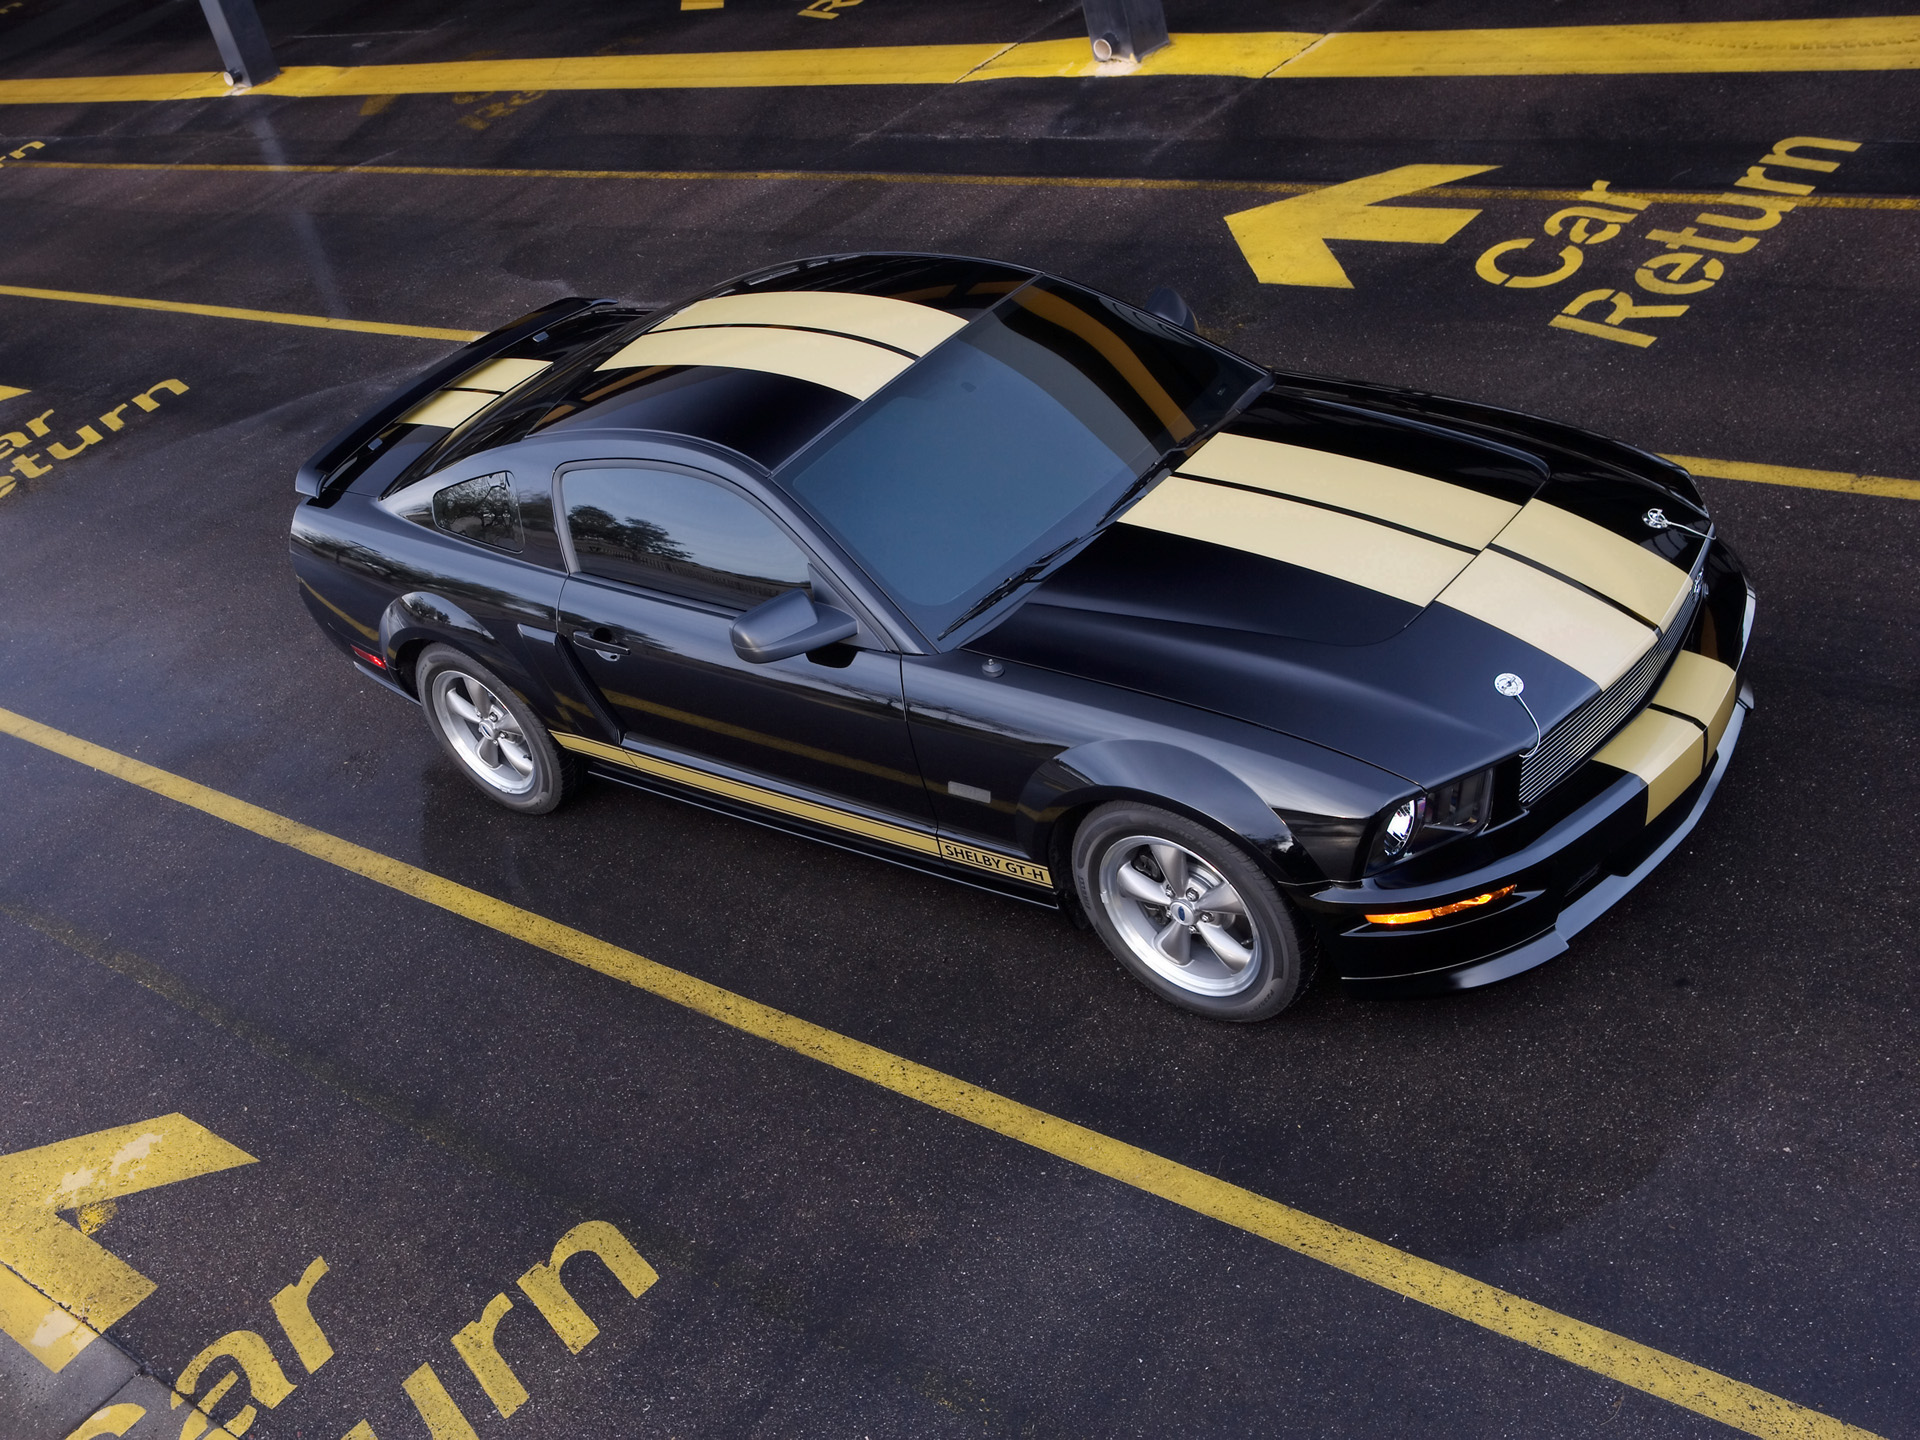 Ford Mustang Shelby photo 33586